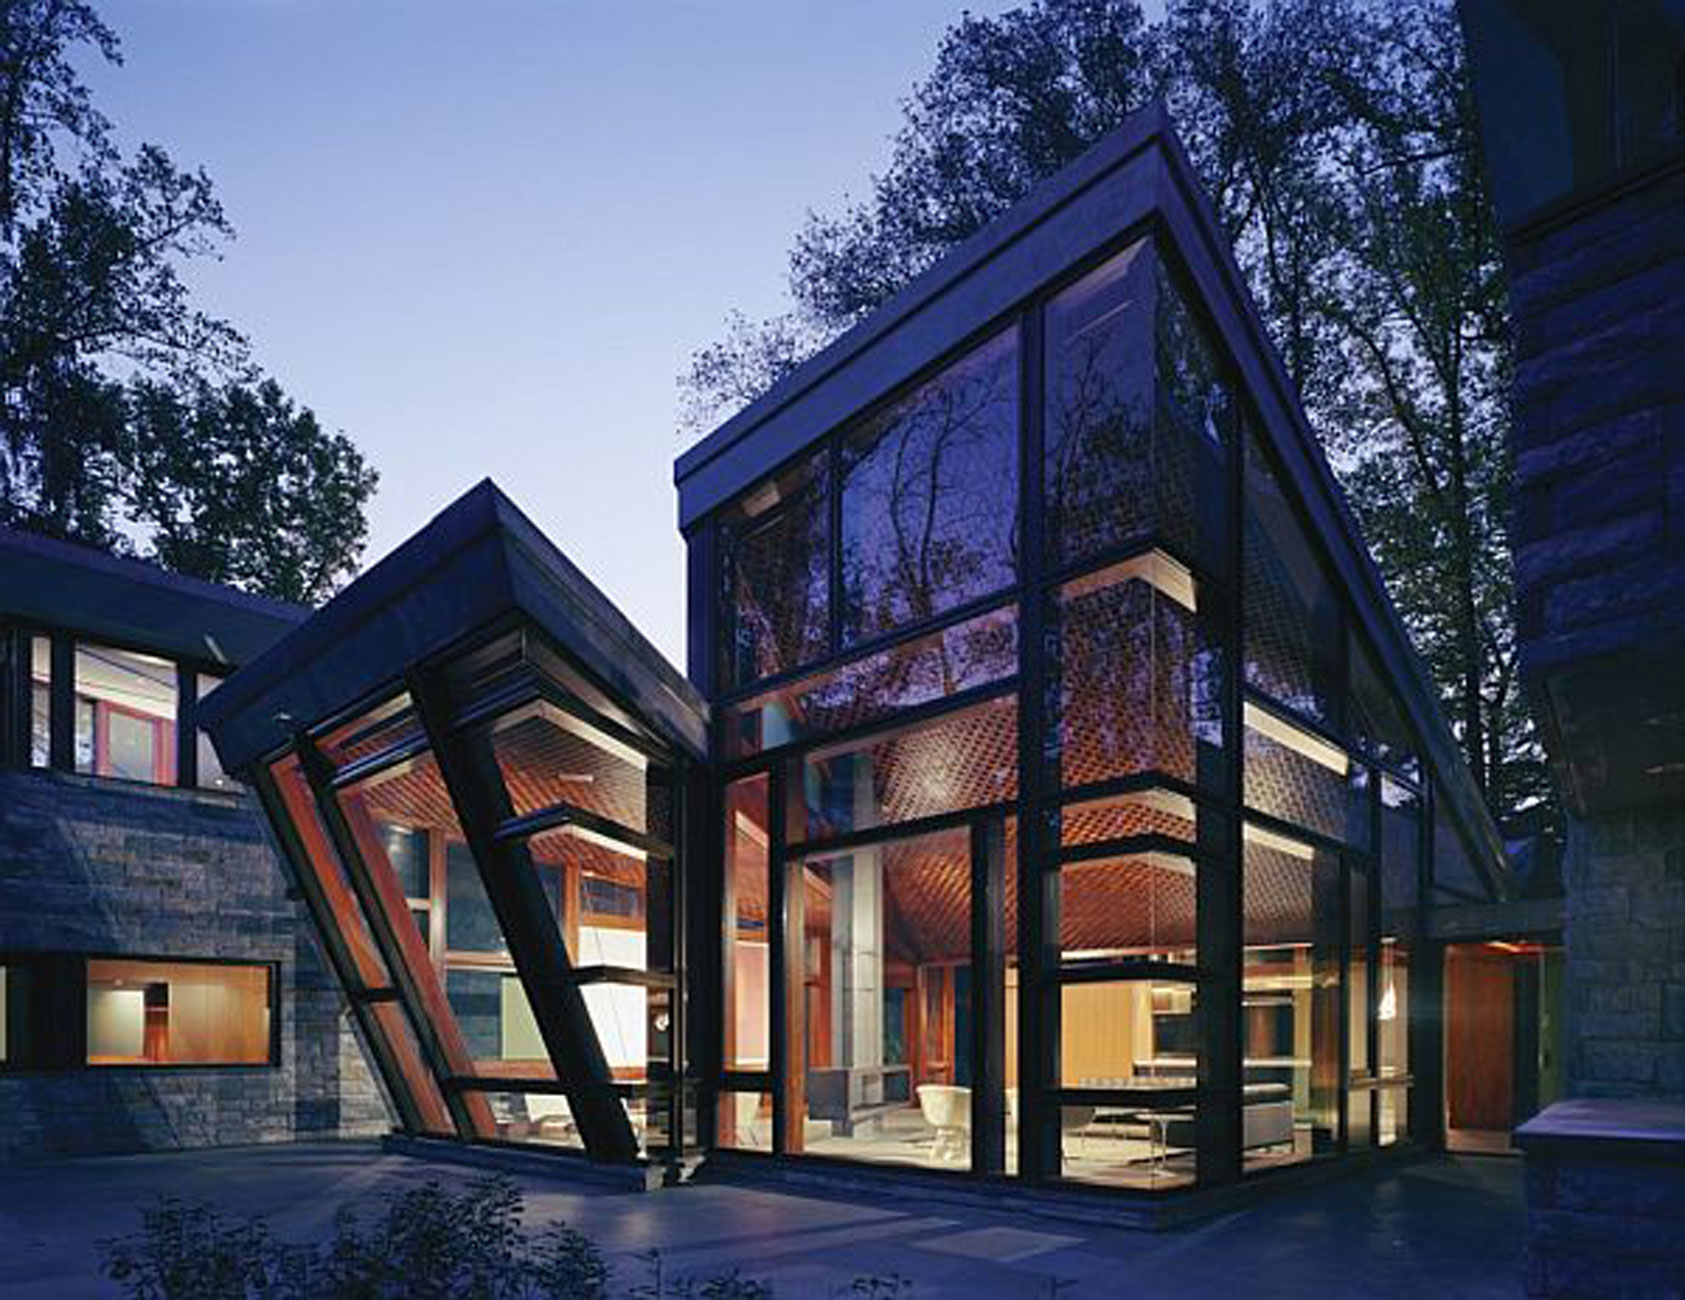 Sunday evening art gallery blog glass houses humoring for House plans architecture